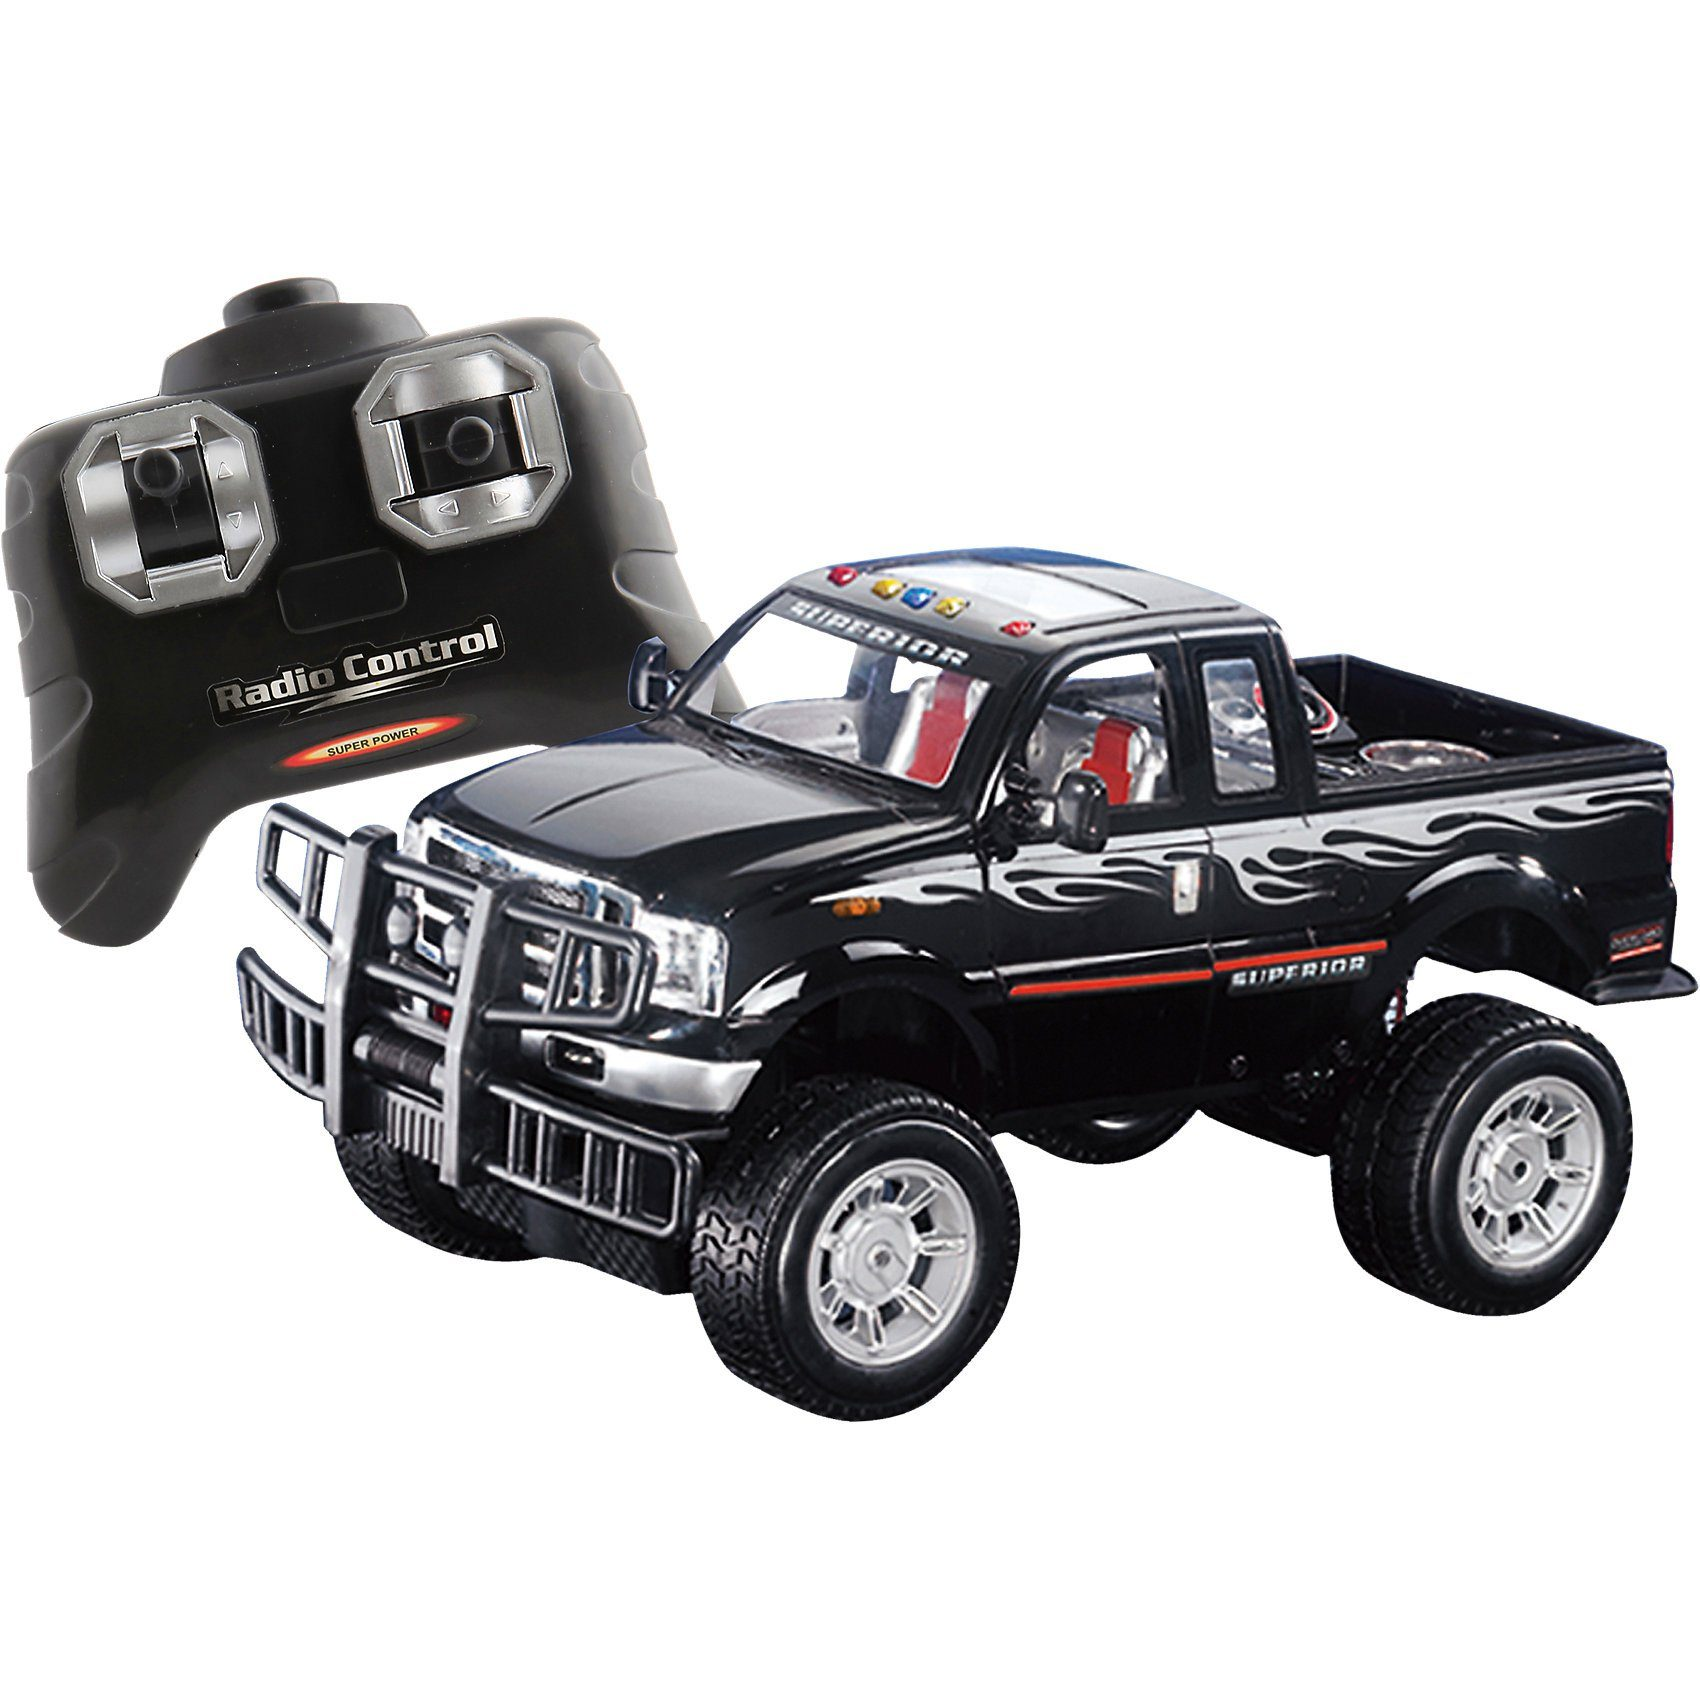 The Toy Company RC Racer Off Road Jeep, 27 MHz